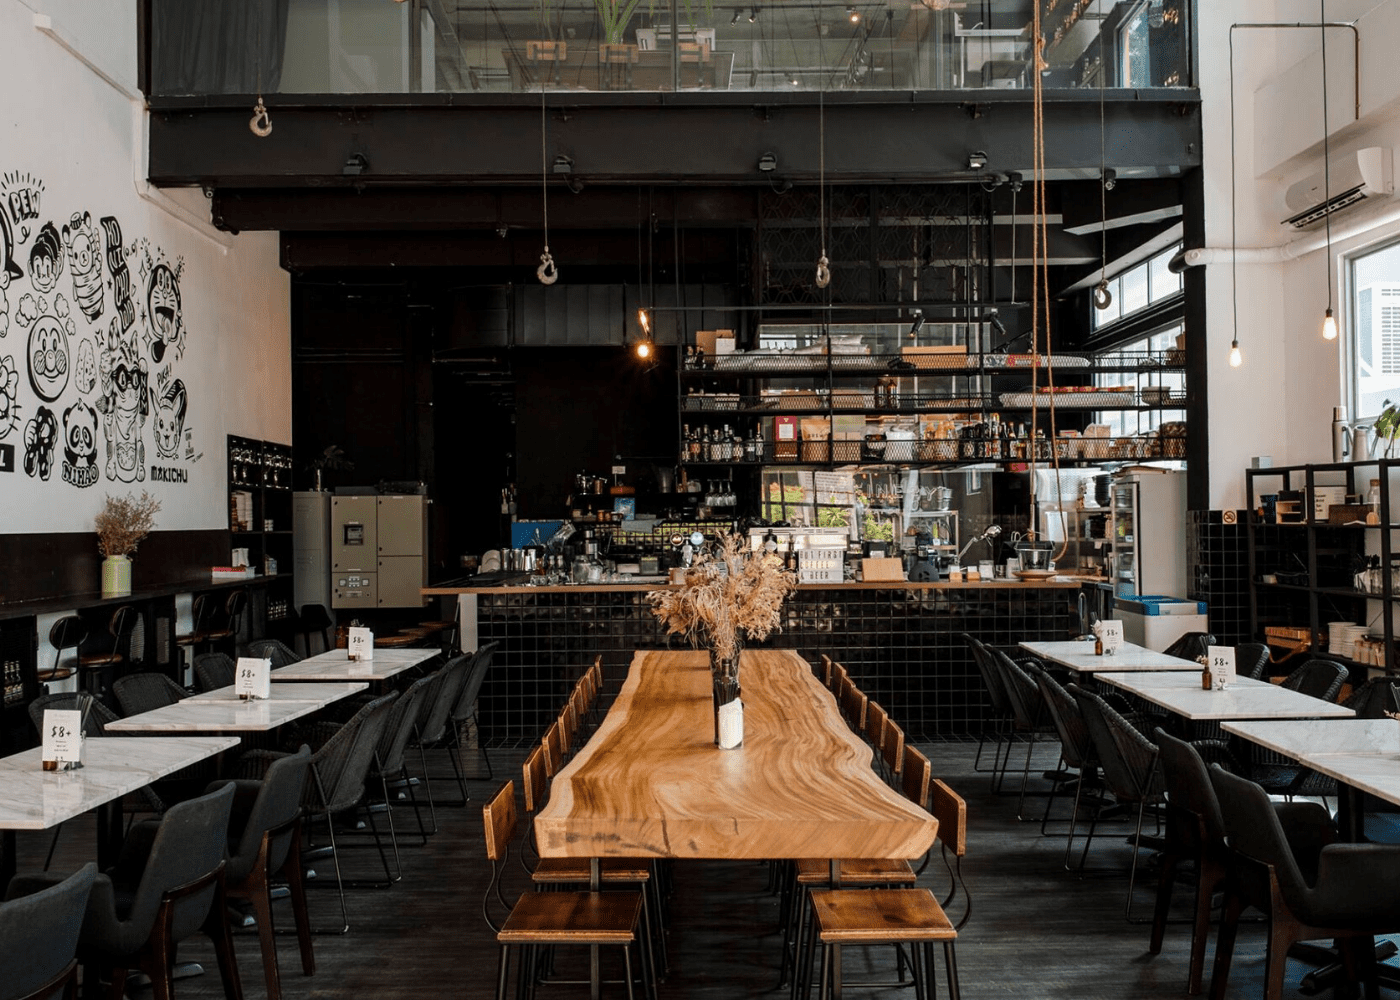 The Refinery | Jalan Besar | Cool cafes in Singapore